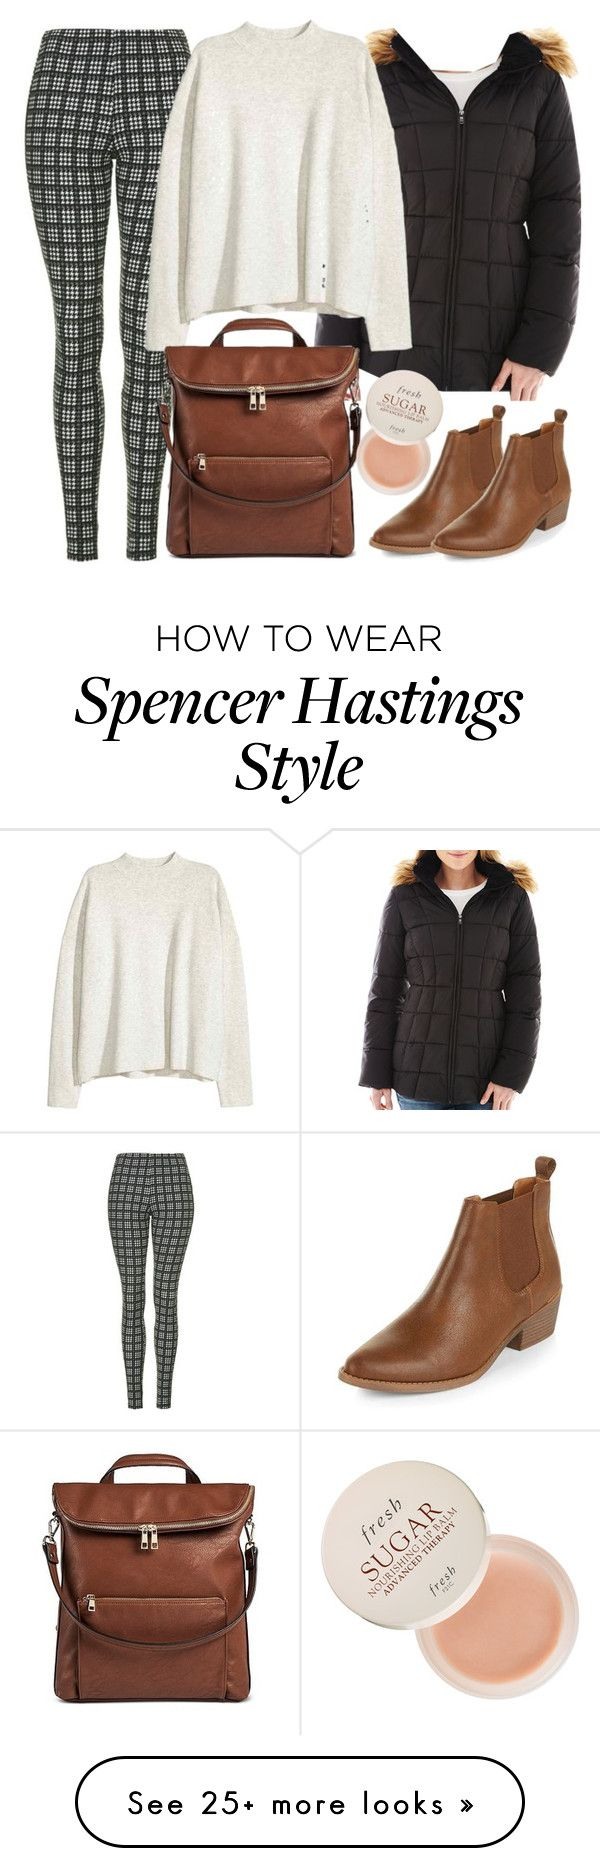 """Spencer Hastings inspired outfit"" by liarsstyle on Polyvore featuring Topshop, A.N.A, DV, Fresh, school, college, comfortable and WF"